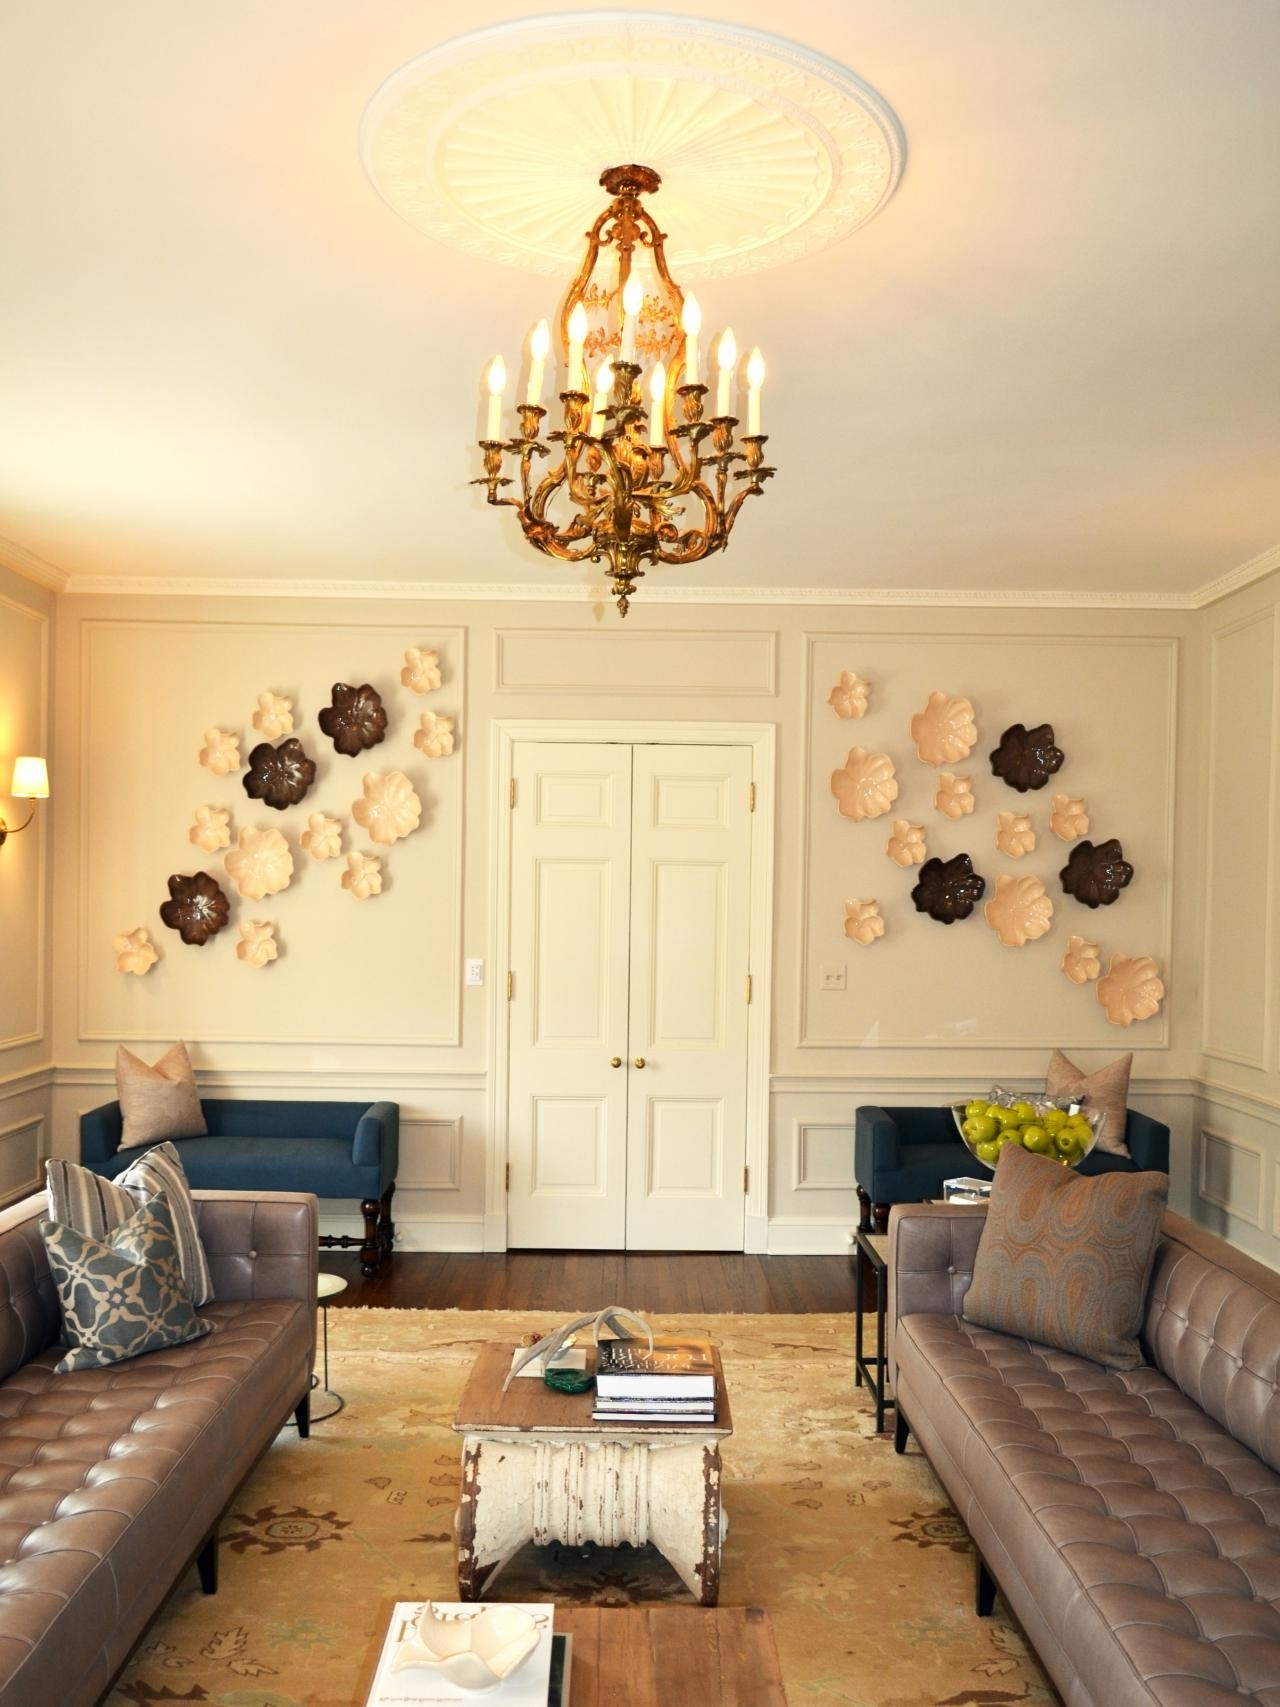 Famous Ceiling Medallion Wall Art With 42 Ceiling Medallion Wall Art, Fascinating 90 Ceiling Medallion Wall (View 12 of 15)